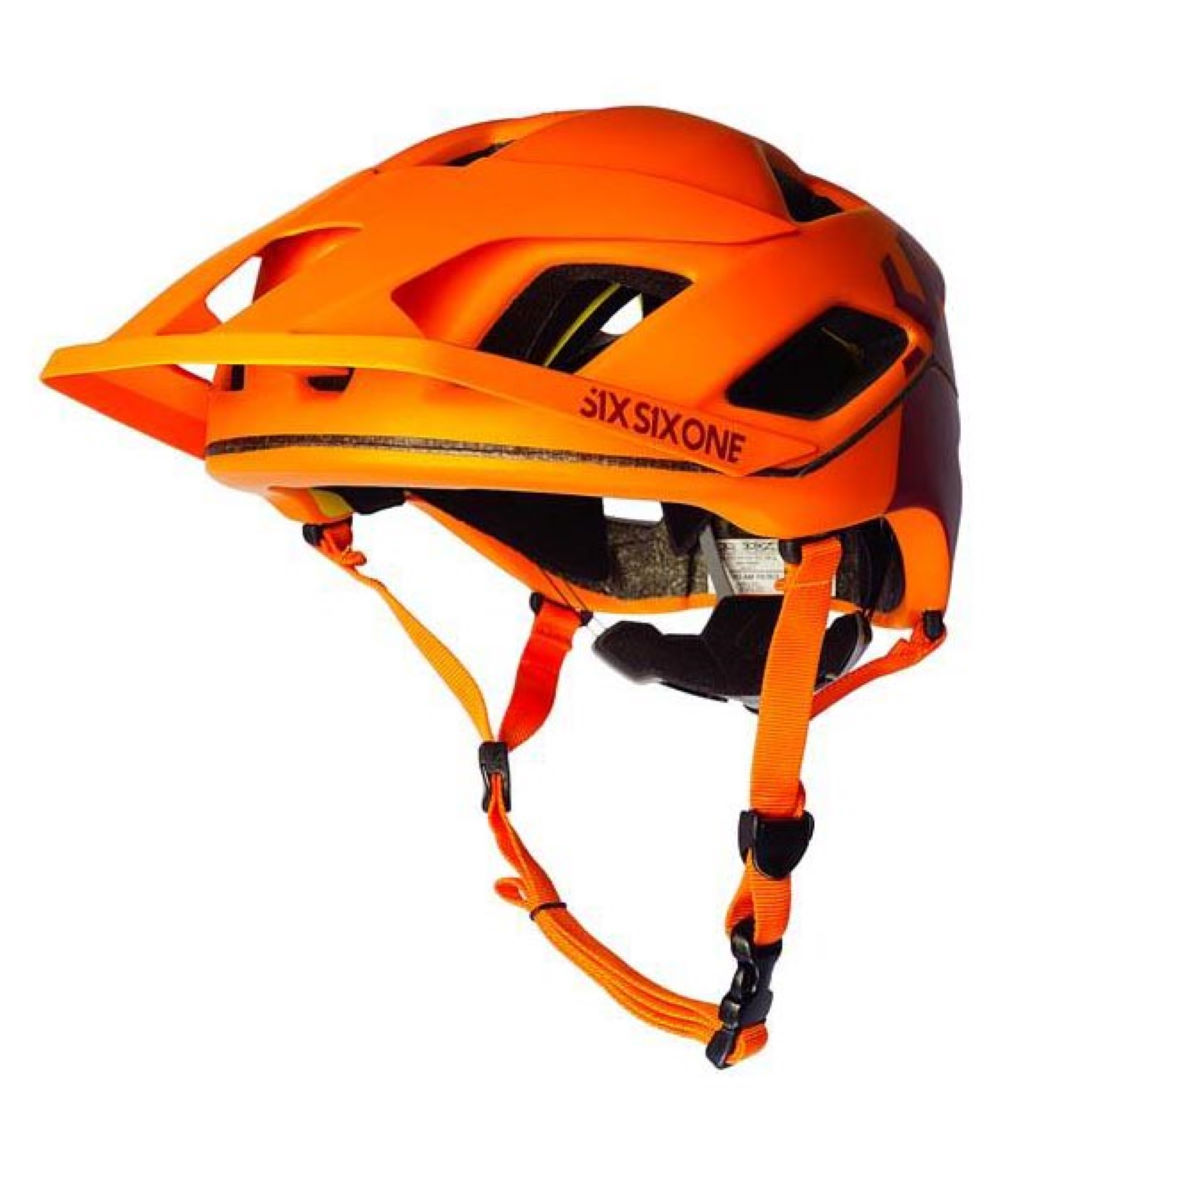 Casque SixSixOne Evo AM Patrol MIPS - XS/S Orange/Orange Casques